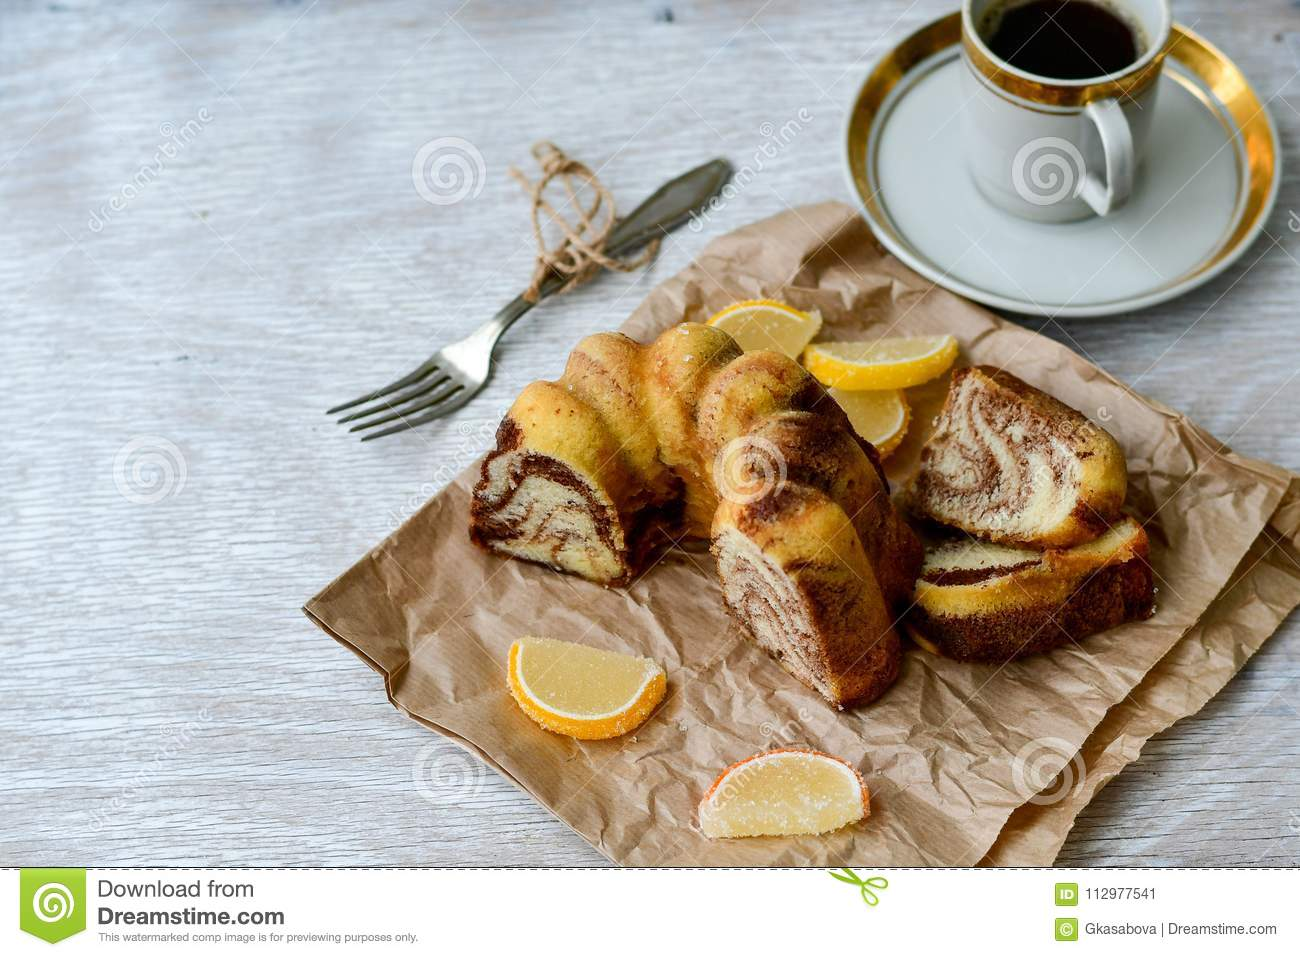 Bundt marble cake, cup of coffee and lemon slices